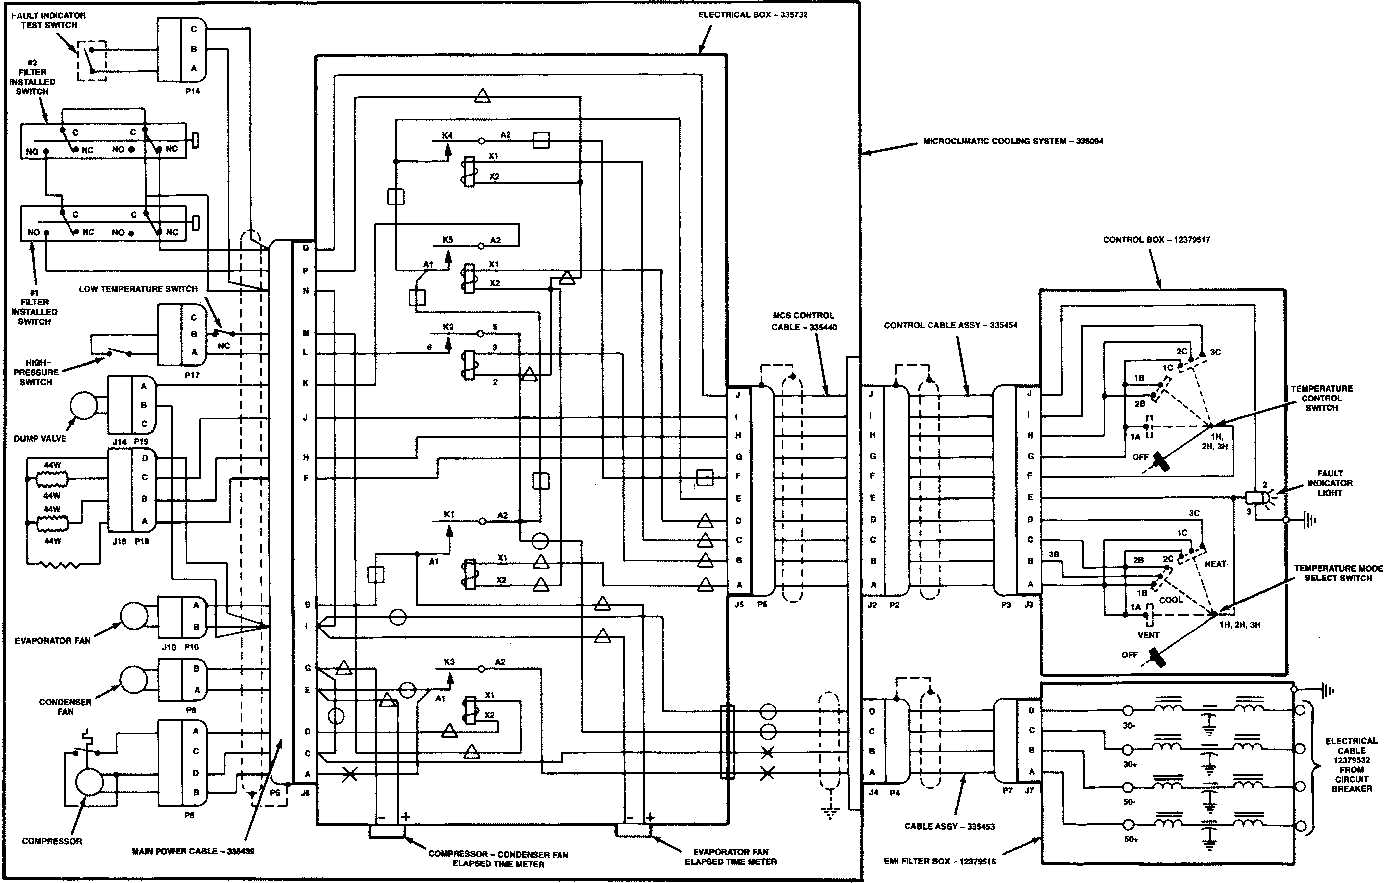 Dohc Oil Diagram In Addition Electrical Engineering Schematics Further Mge Wiring Diagram Furthermore Kazuma